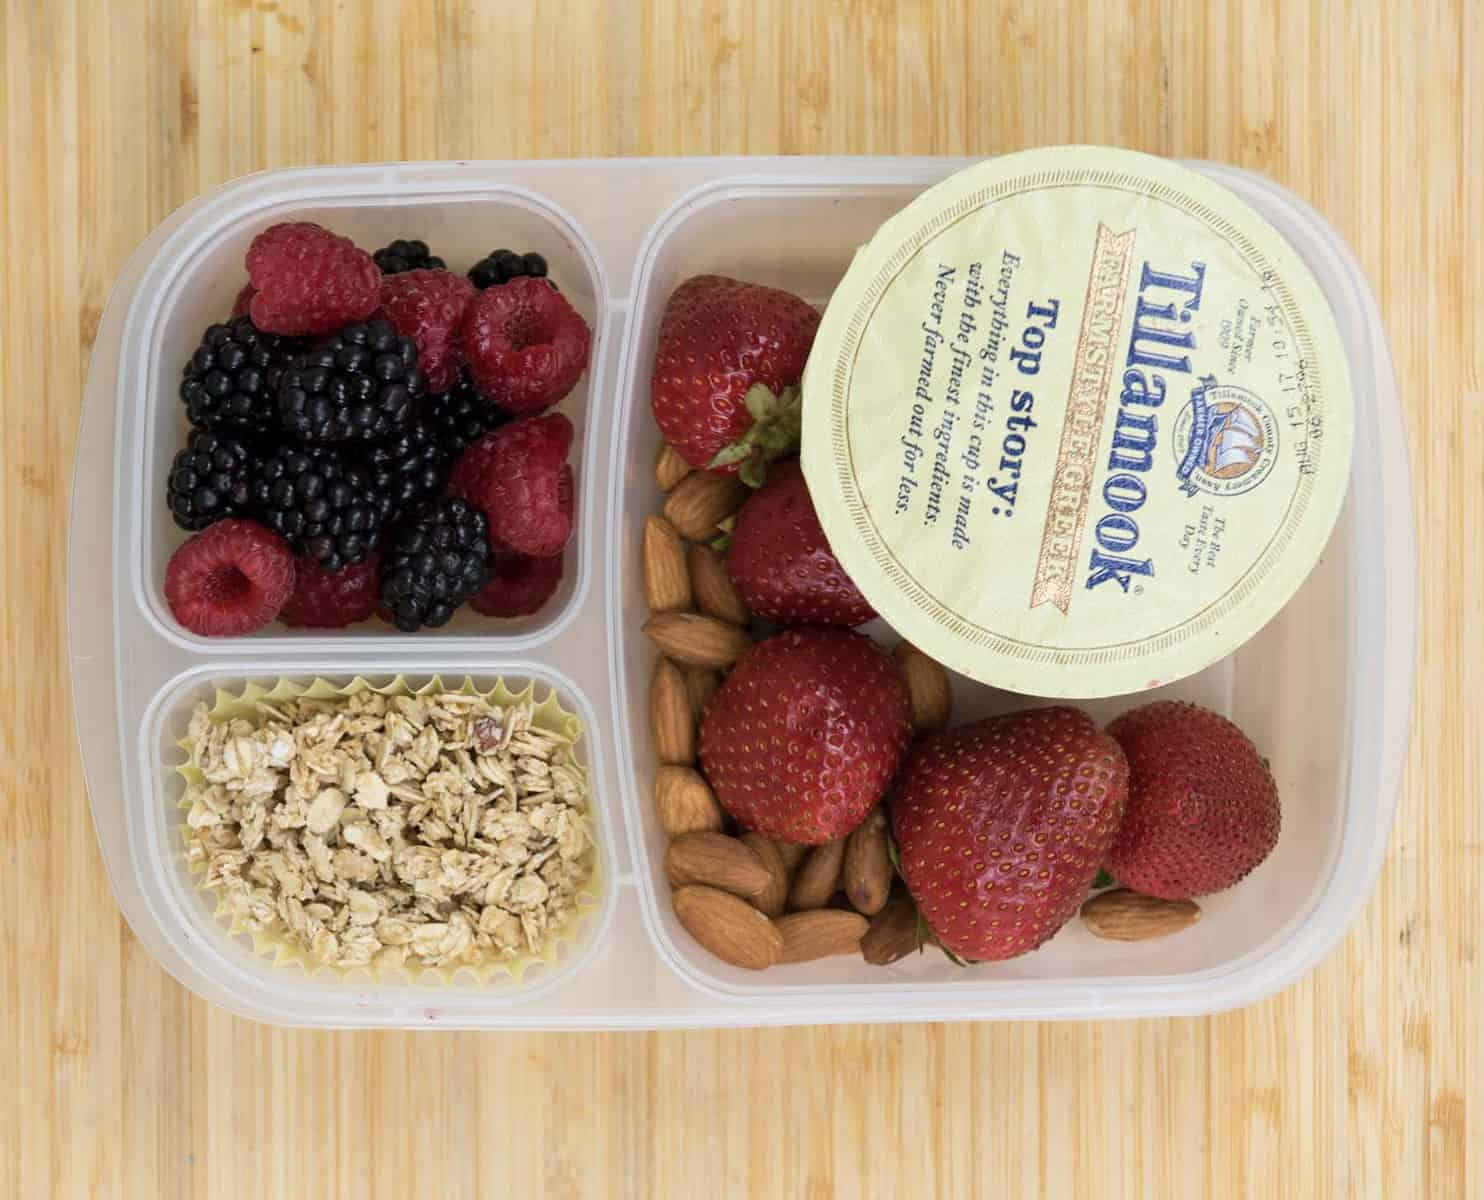 Lunch Box Ideas - Yogurt Parfait Lunch Box